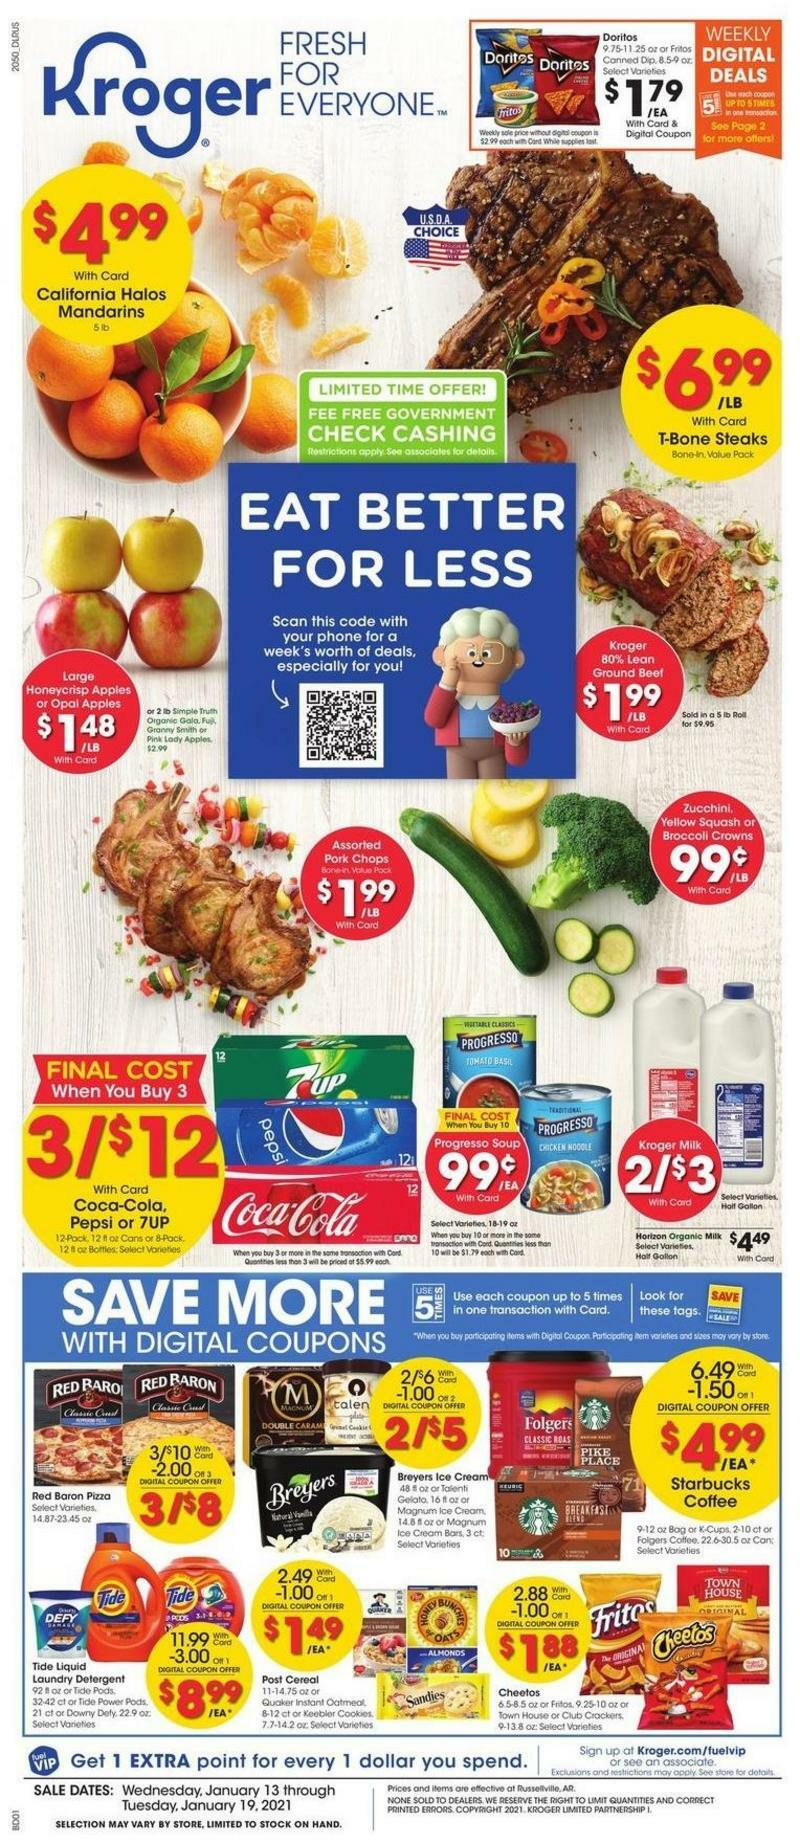 Kroger Weekly Ad from January 13